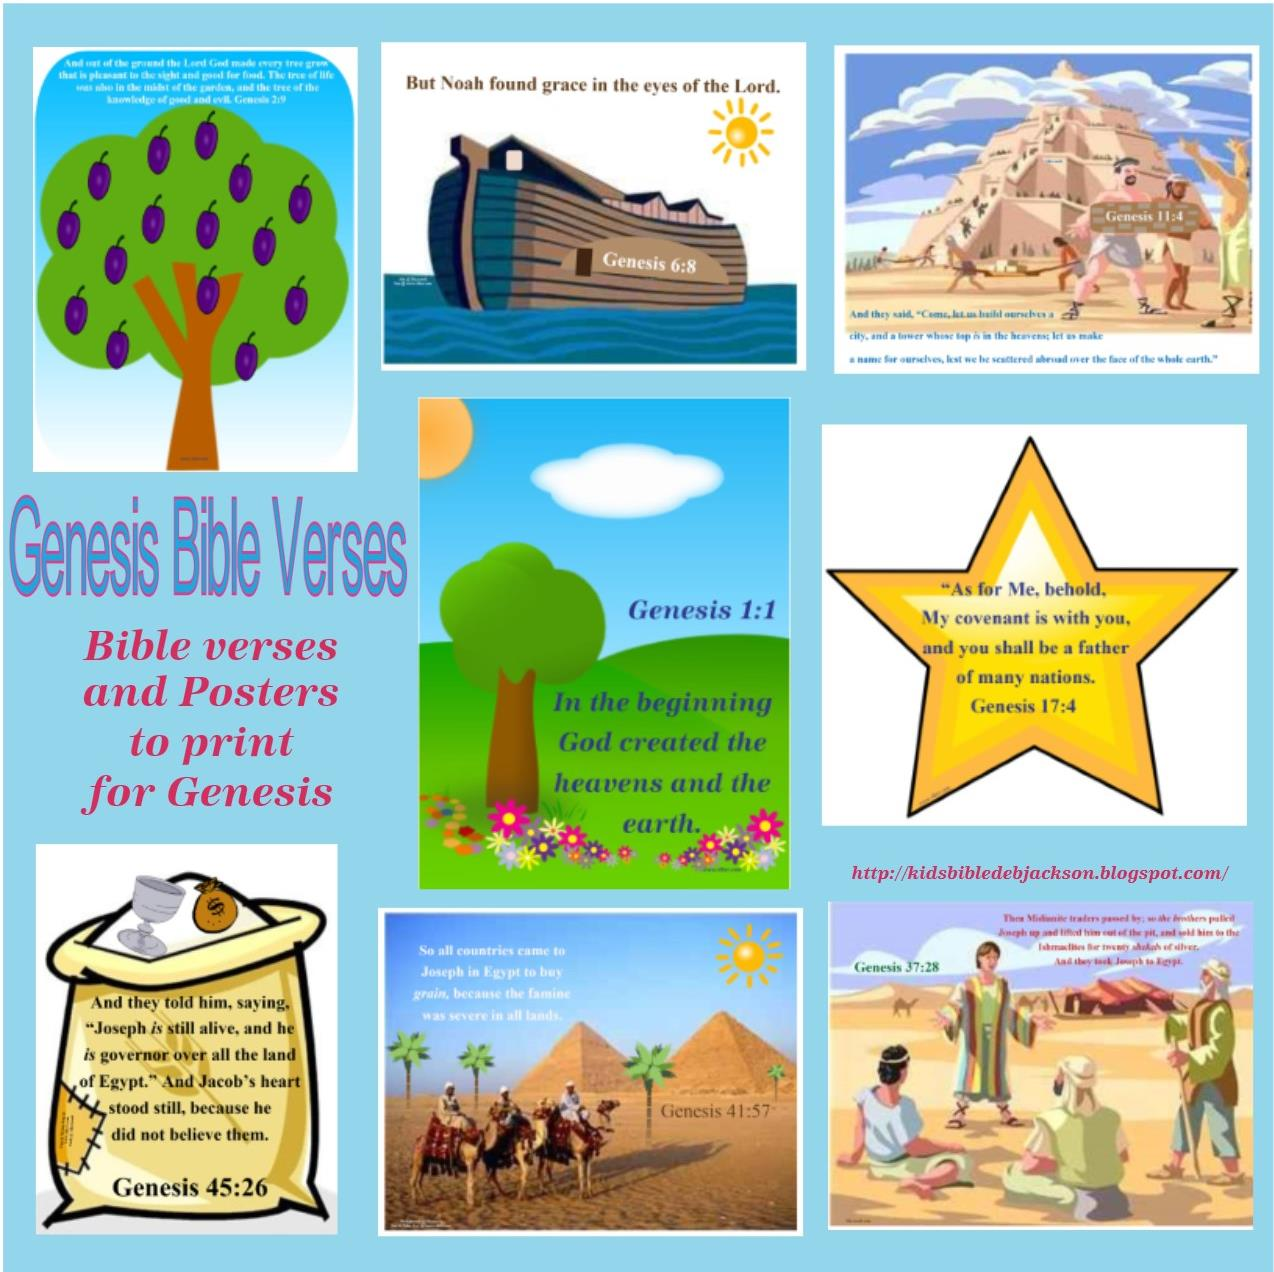 Follow Directions Worksheets First Grade moreover Image in addition Geneology Of Moses X X in addition Ca C C E D Bbf C further A F Ccb Bdeefce Farm Animals Printables Primary Lessons. on noah bible worksheet for first grade